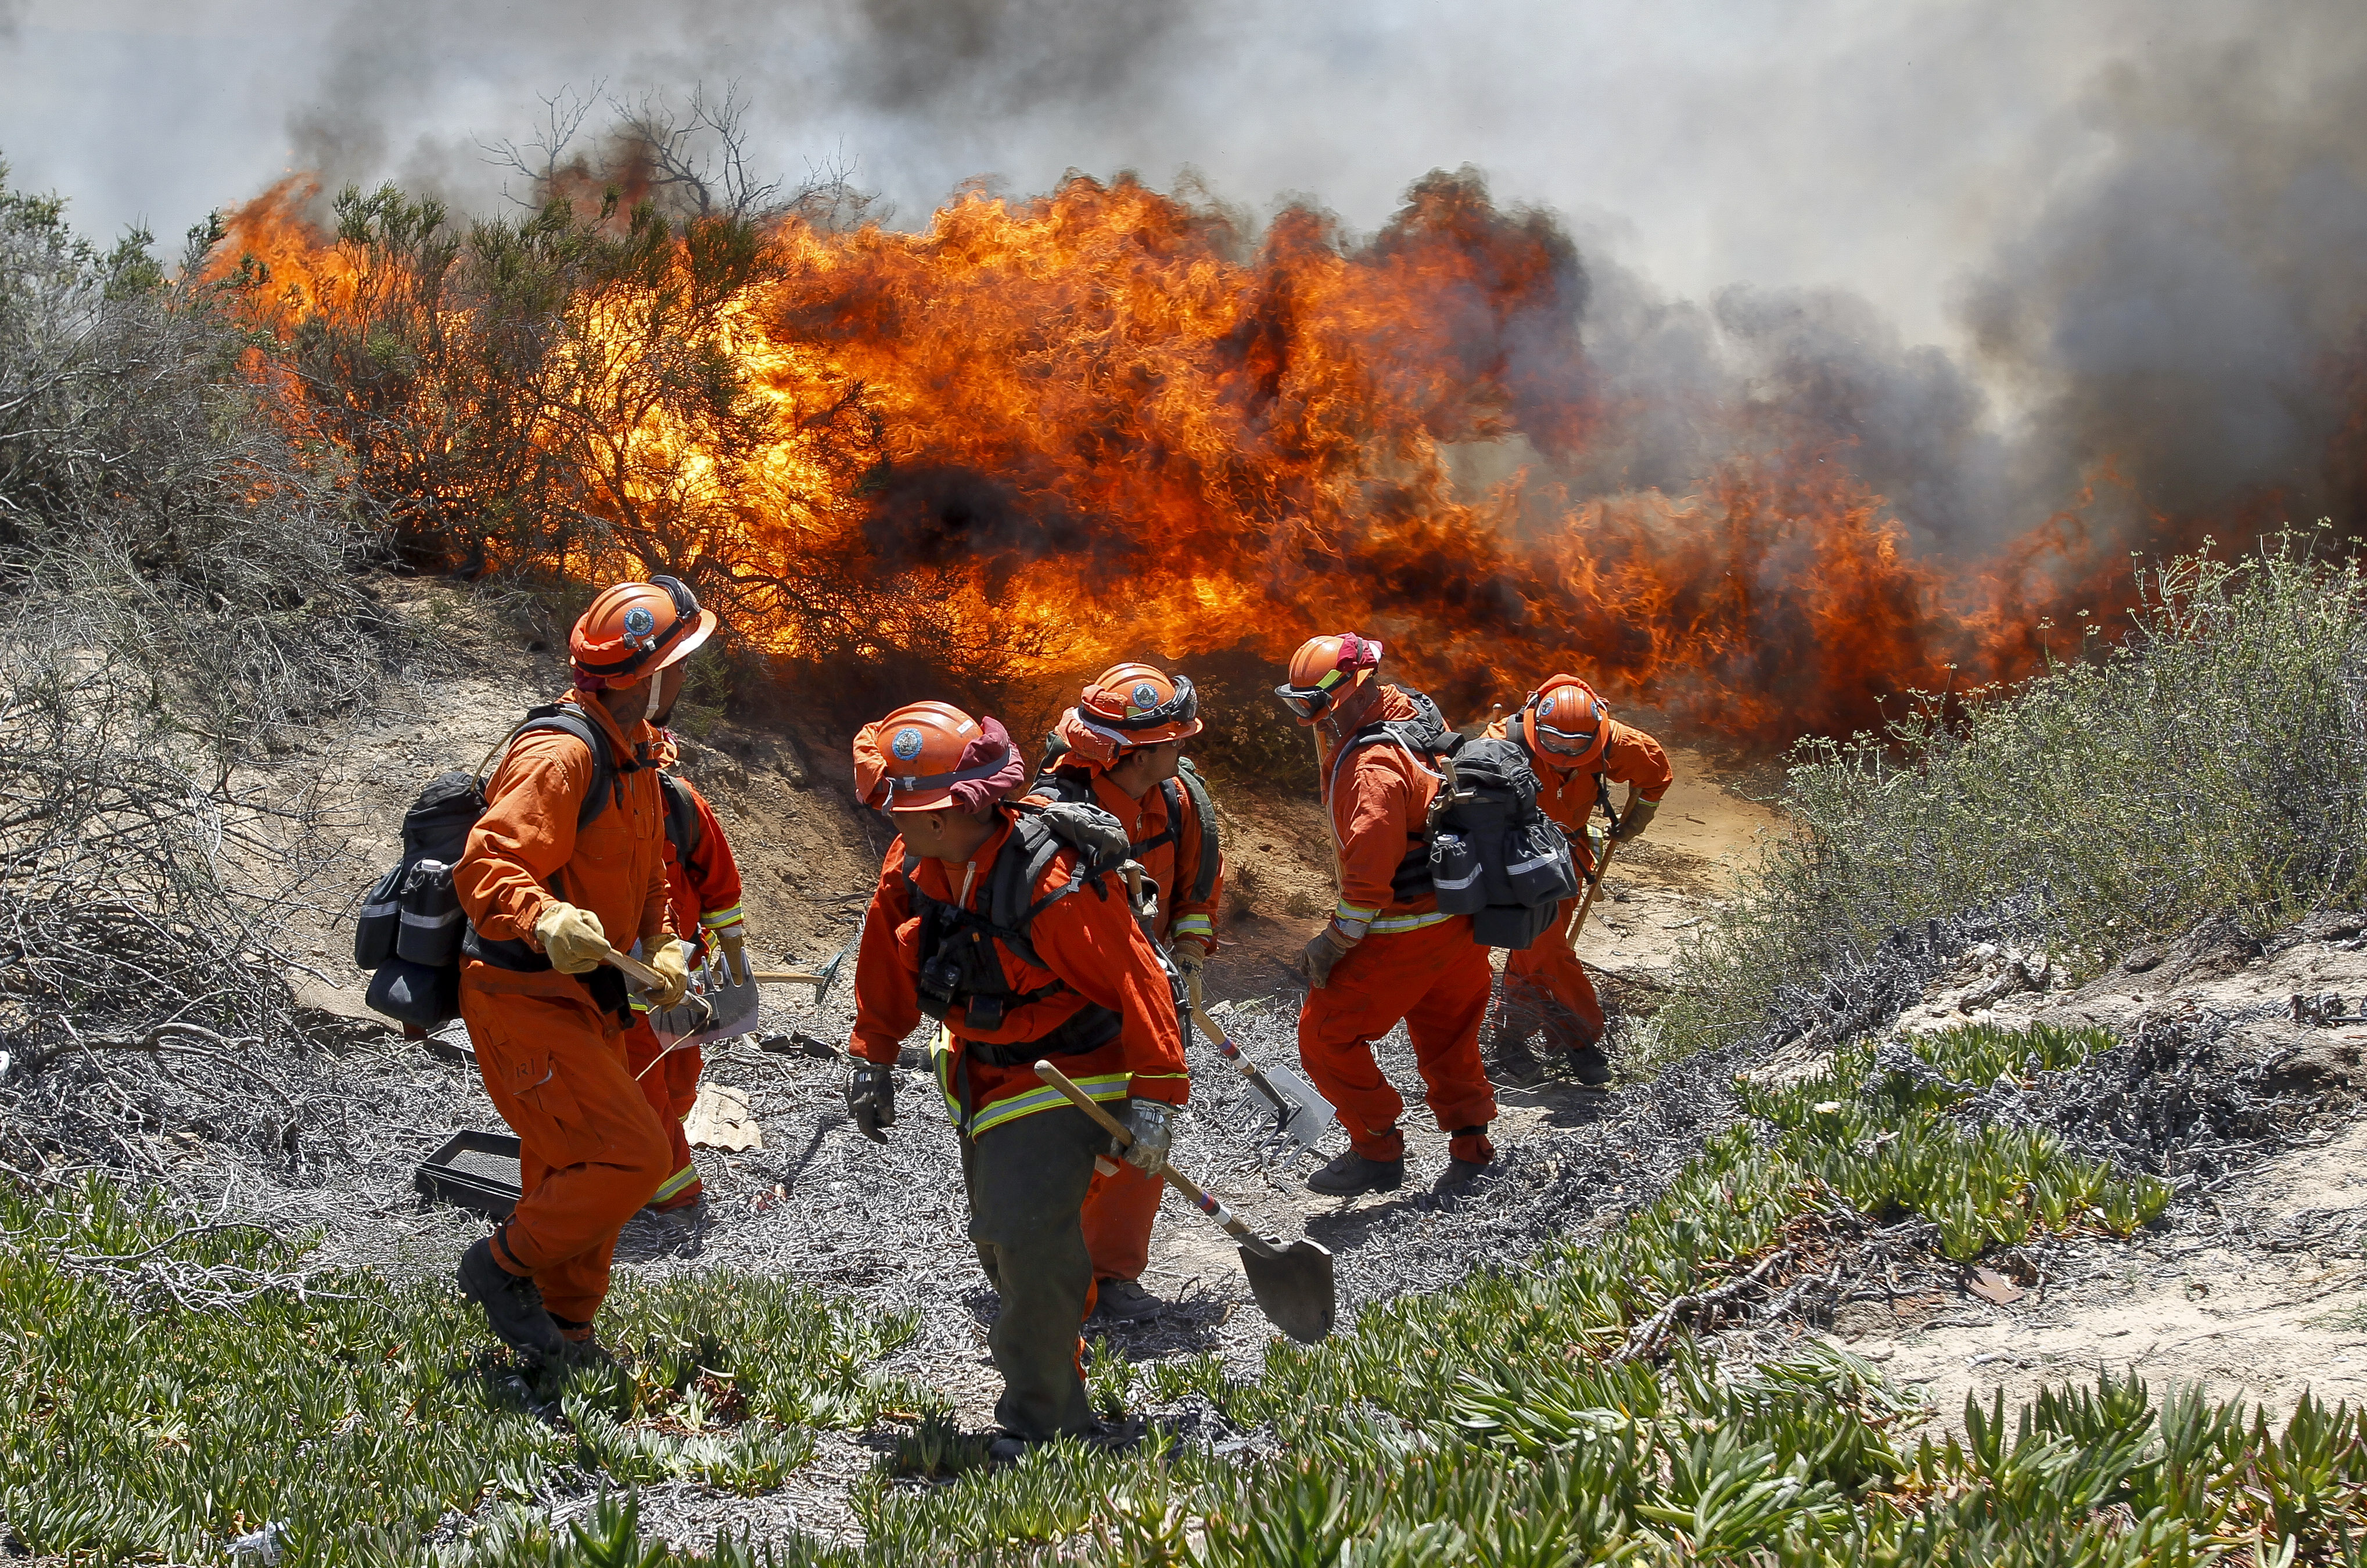 Inmates from Oak Glen Fire Camp in Riverside retreat to higher ground as the flames start to move close while they work to control the fire near Oriole Court in Carlsbad, Calif. on May 14, 2014.